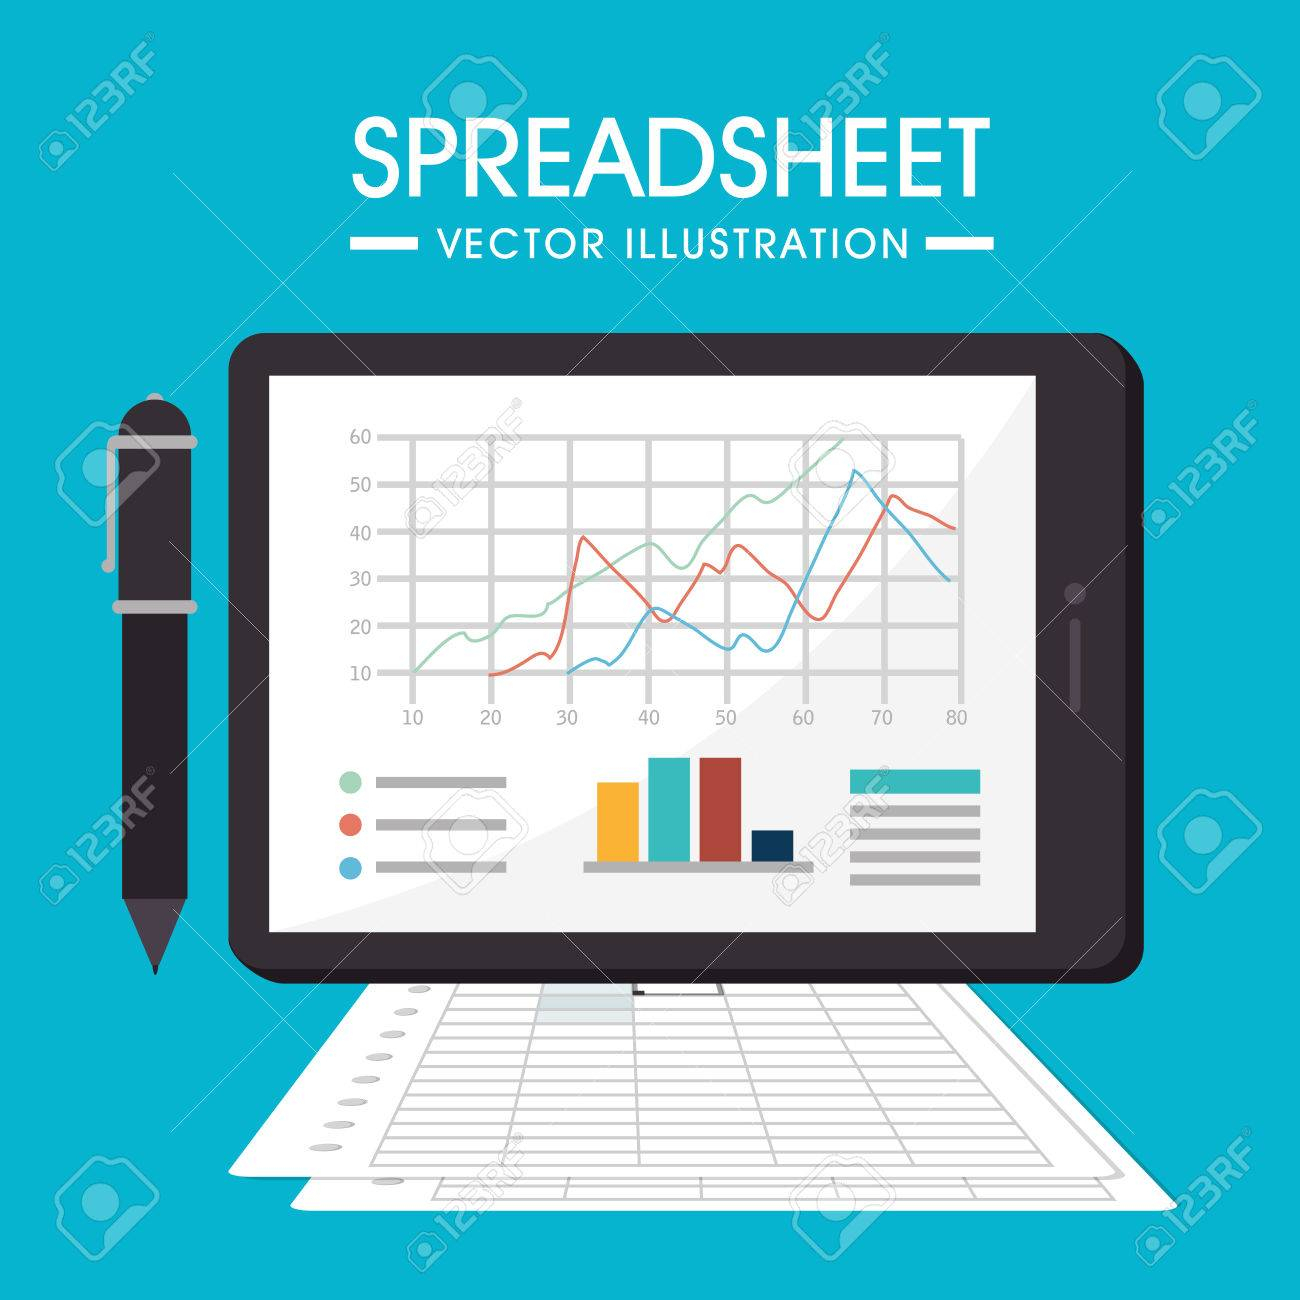 Spreadsheet Design Pertaining To Spreadsheet Design Illustration. Royalty Free Cliparts, Vectors, And